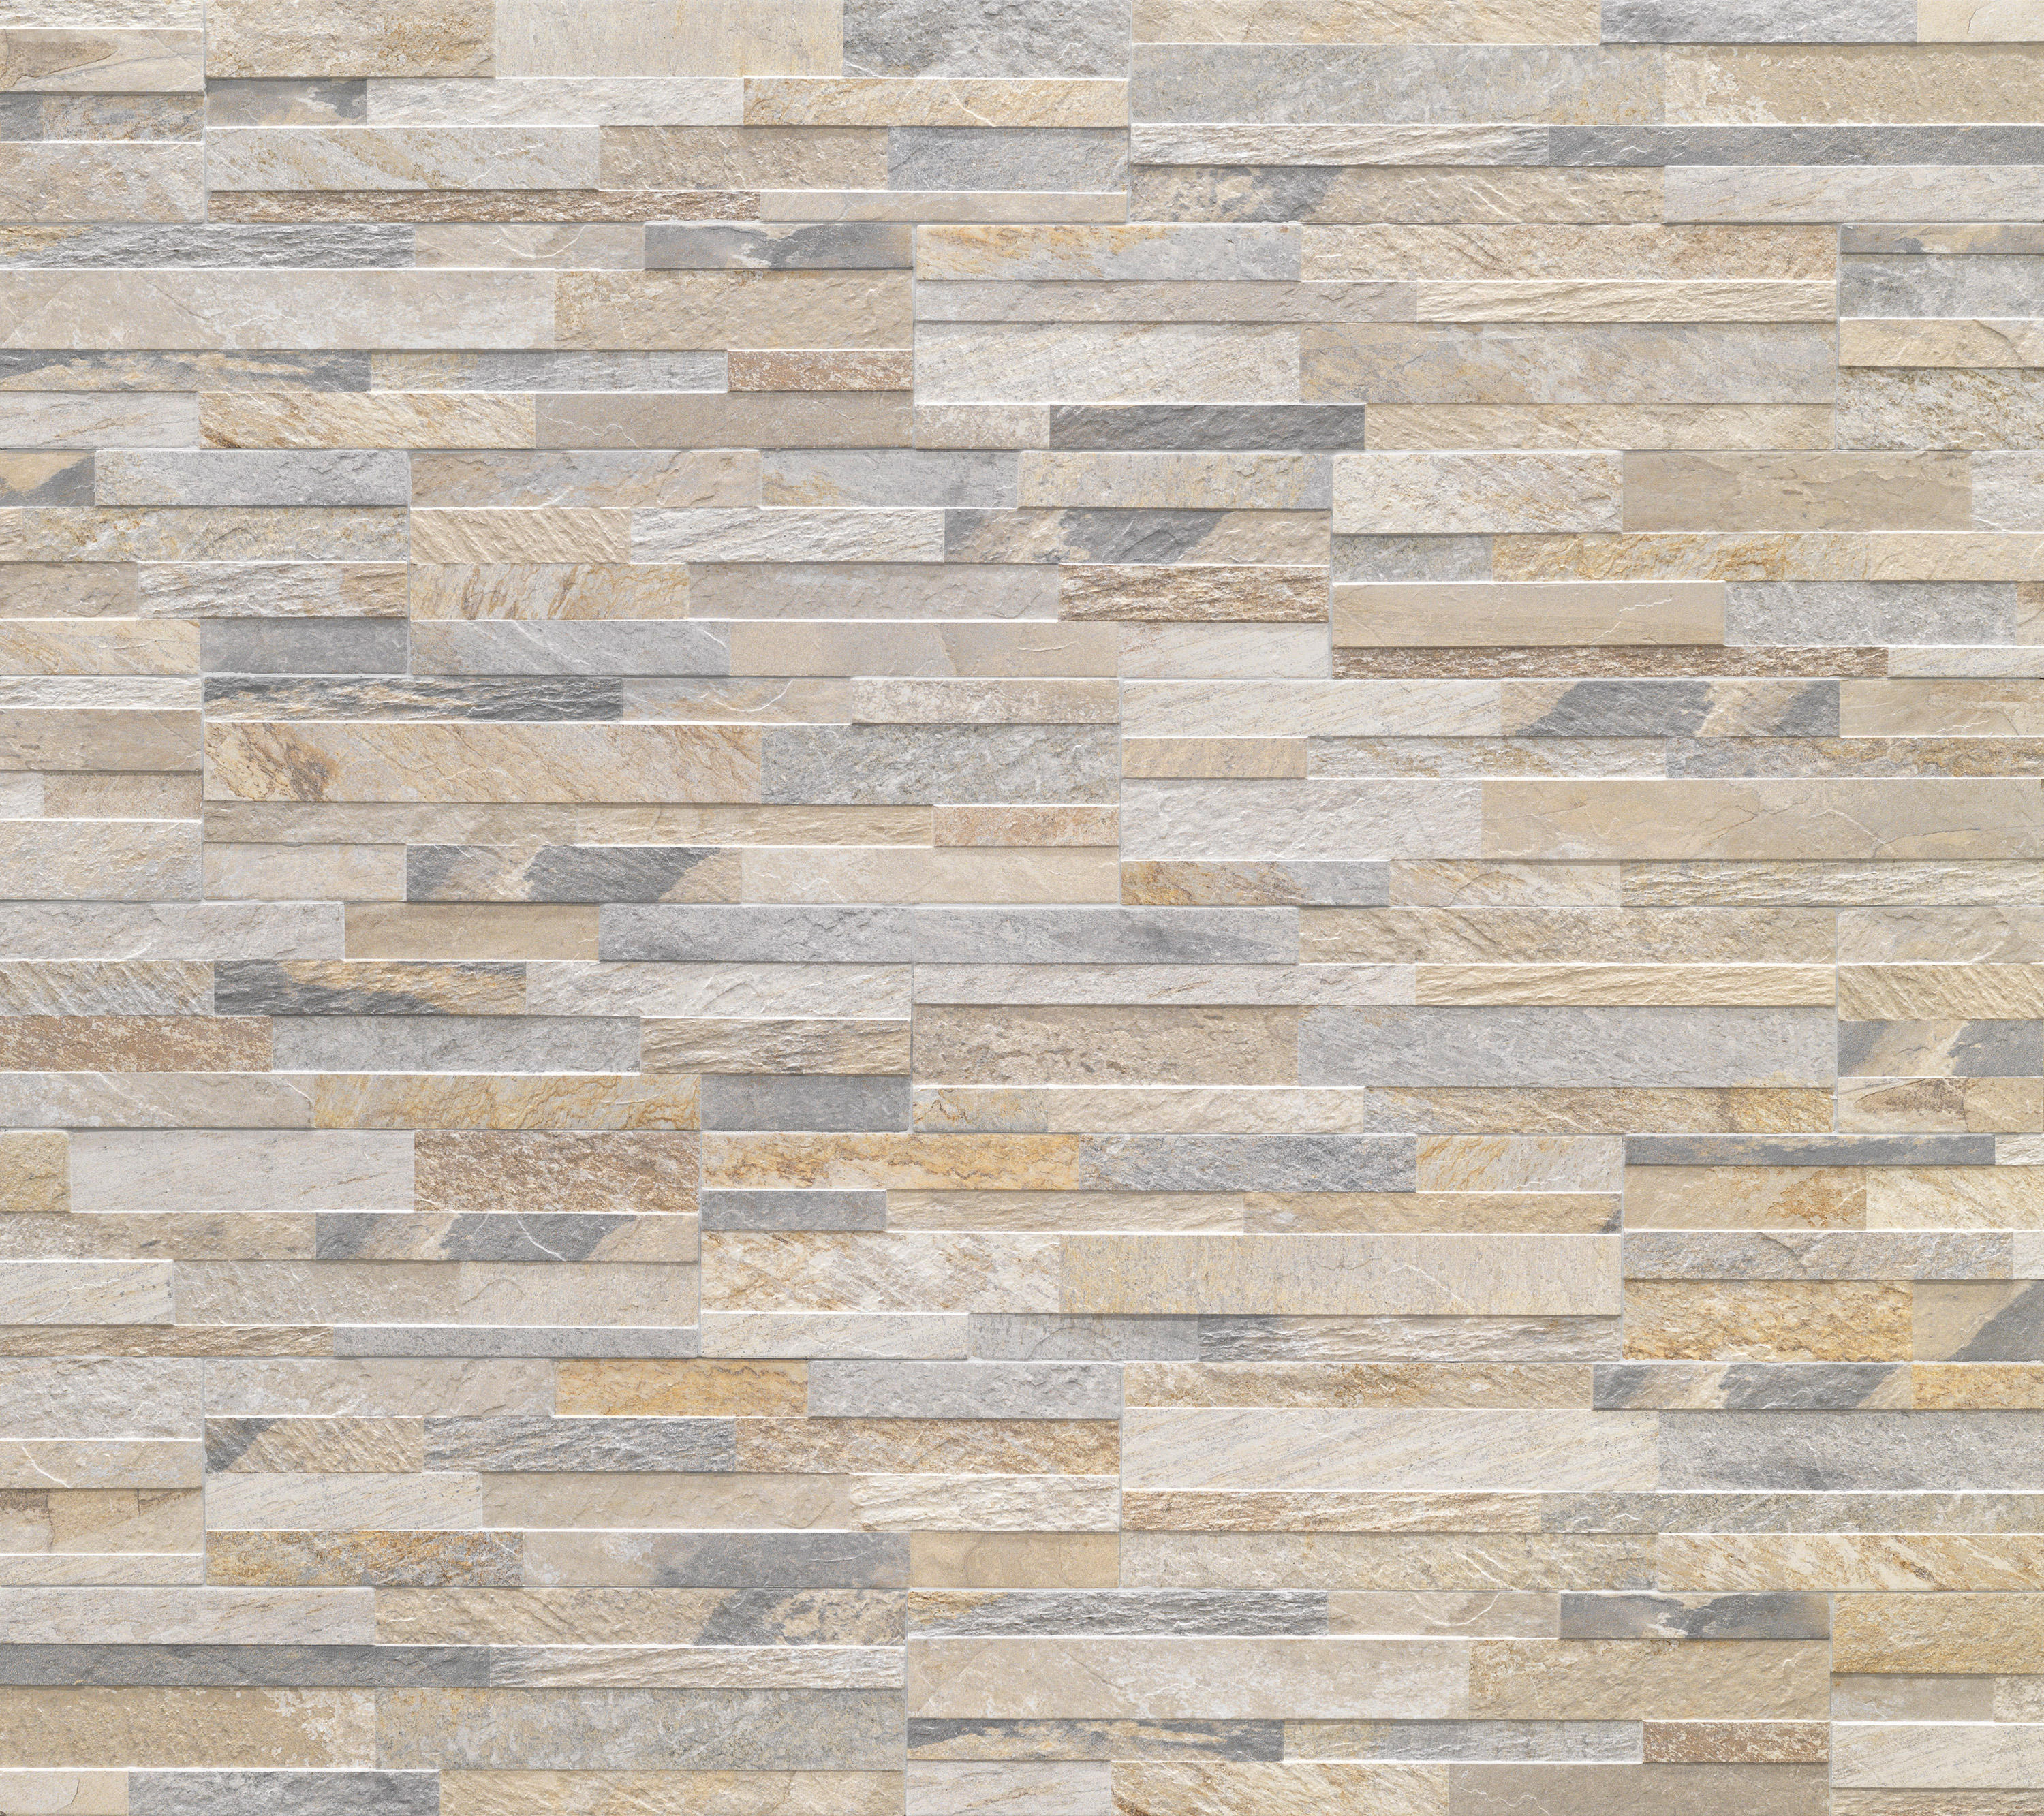 Cubics Beige By Rondine - Ceramic Tiles